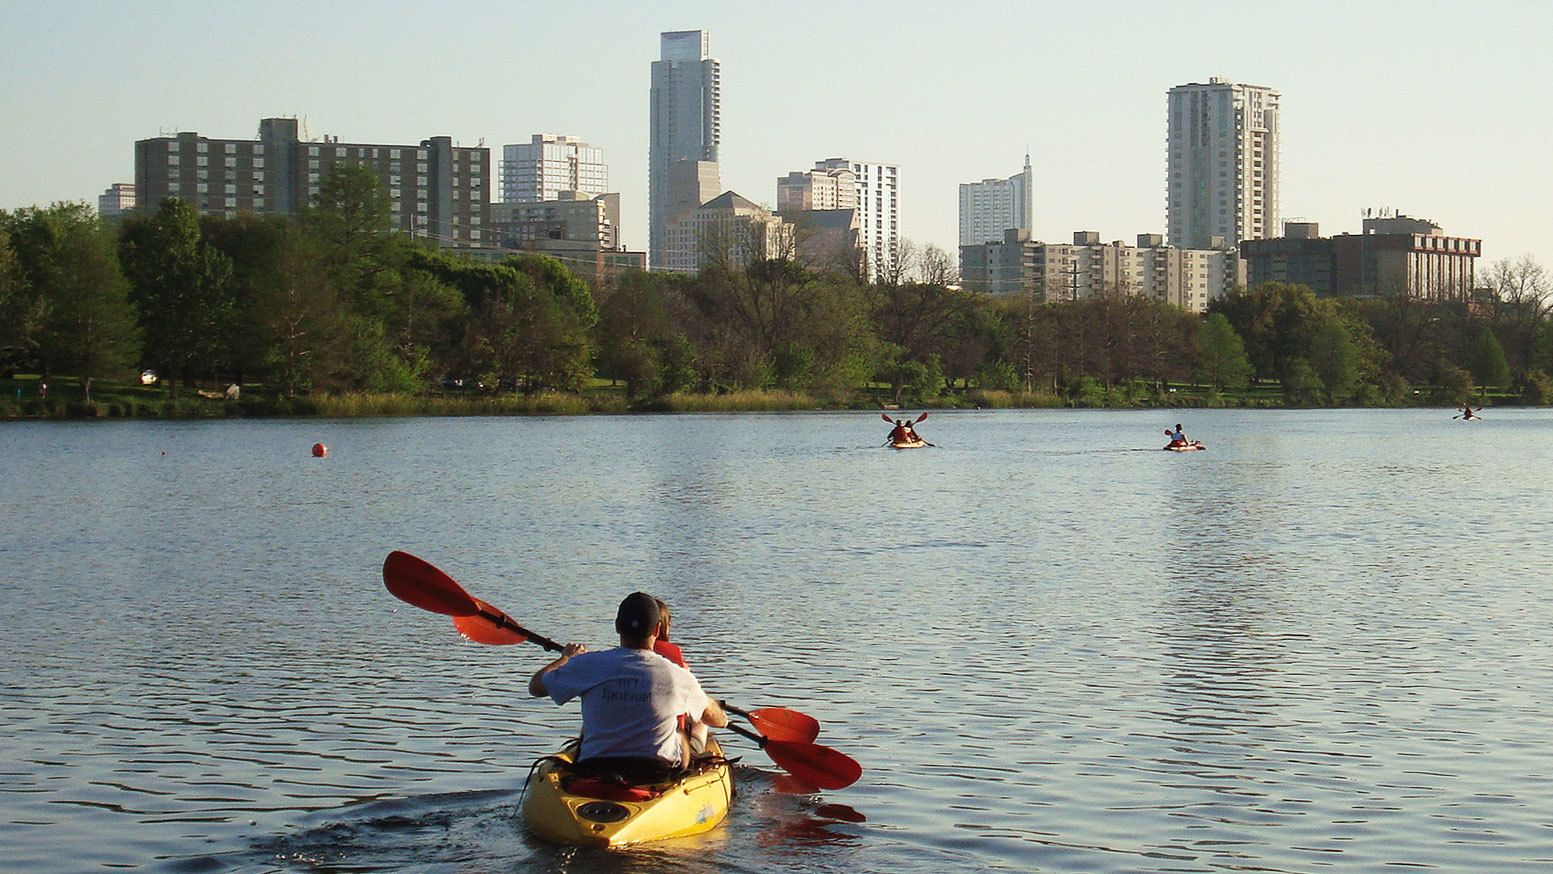 Kayakers paddling through river in Austin